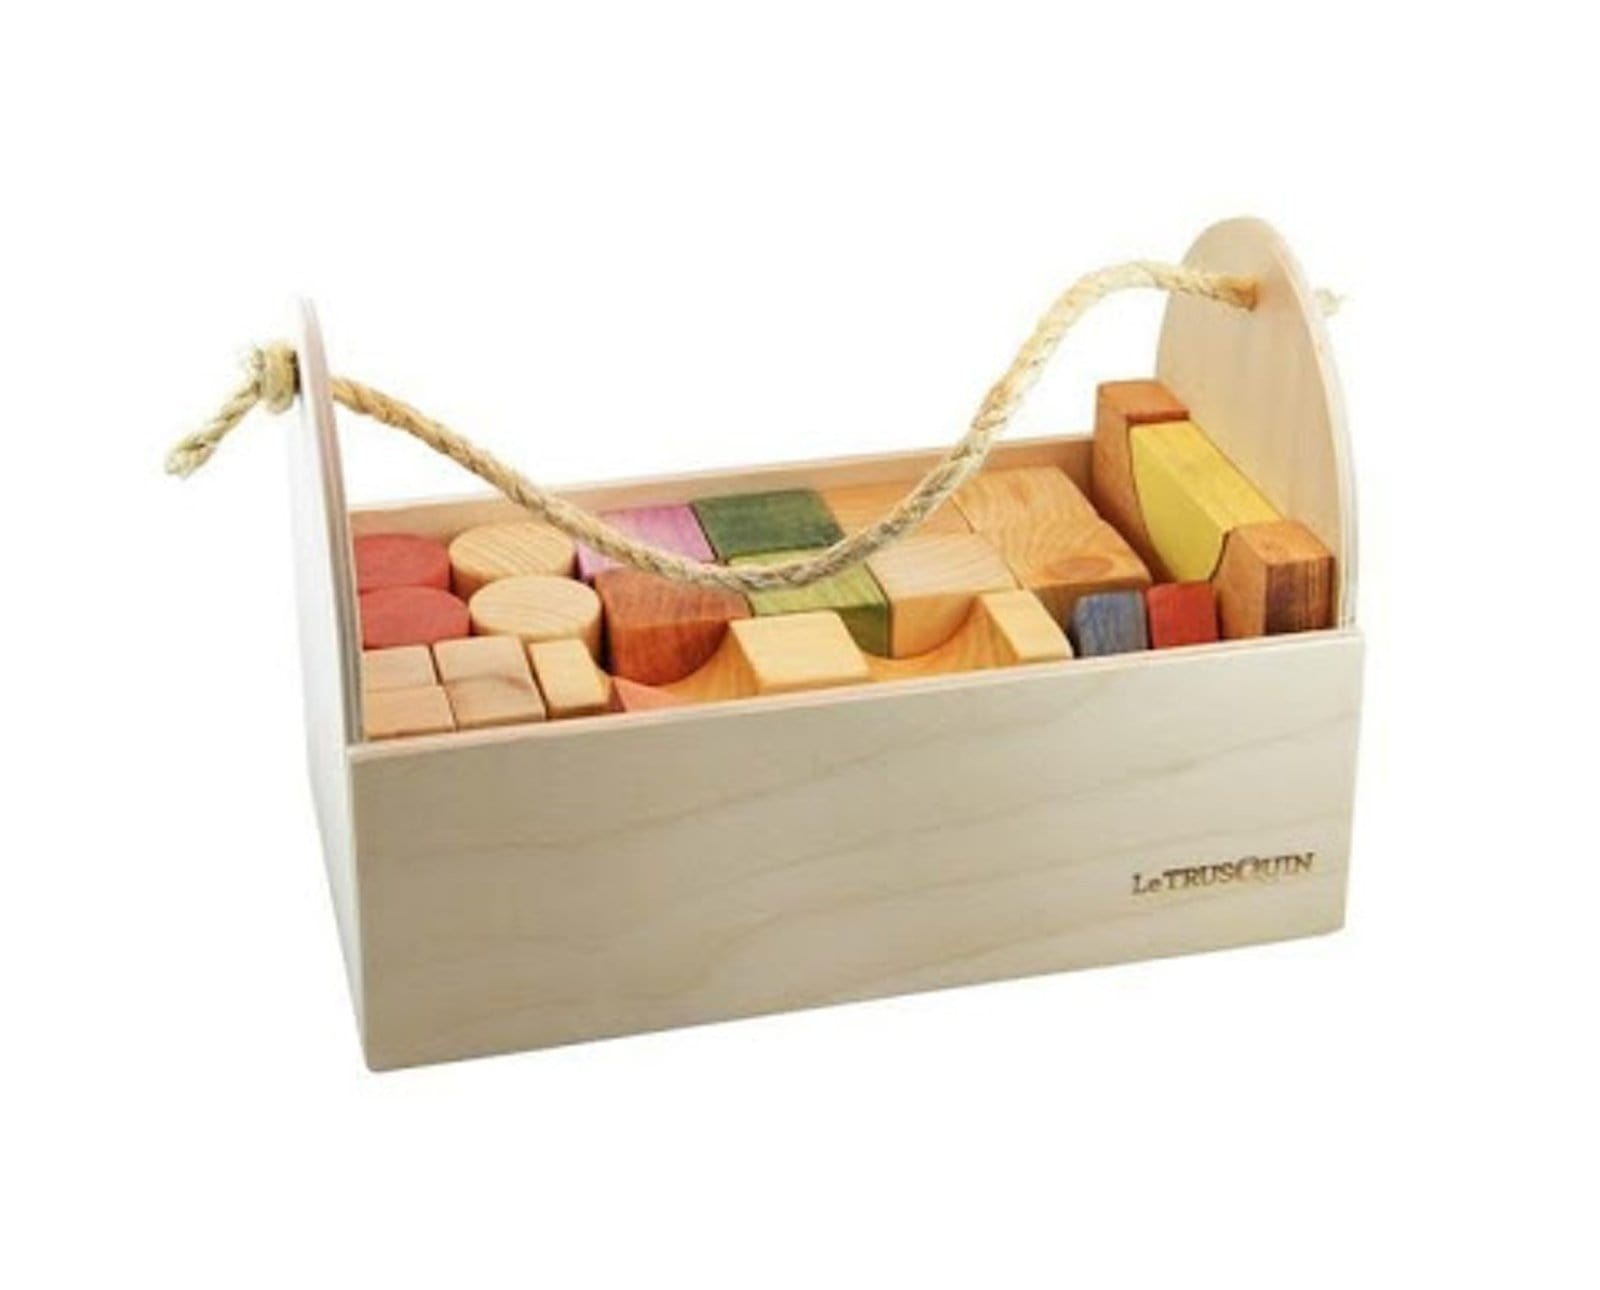 Wooden Blocks Set - The Montessori Room Le Trusquin Boutique Made in Quebec